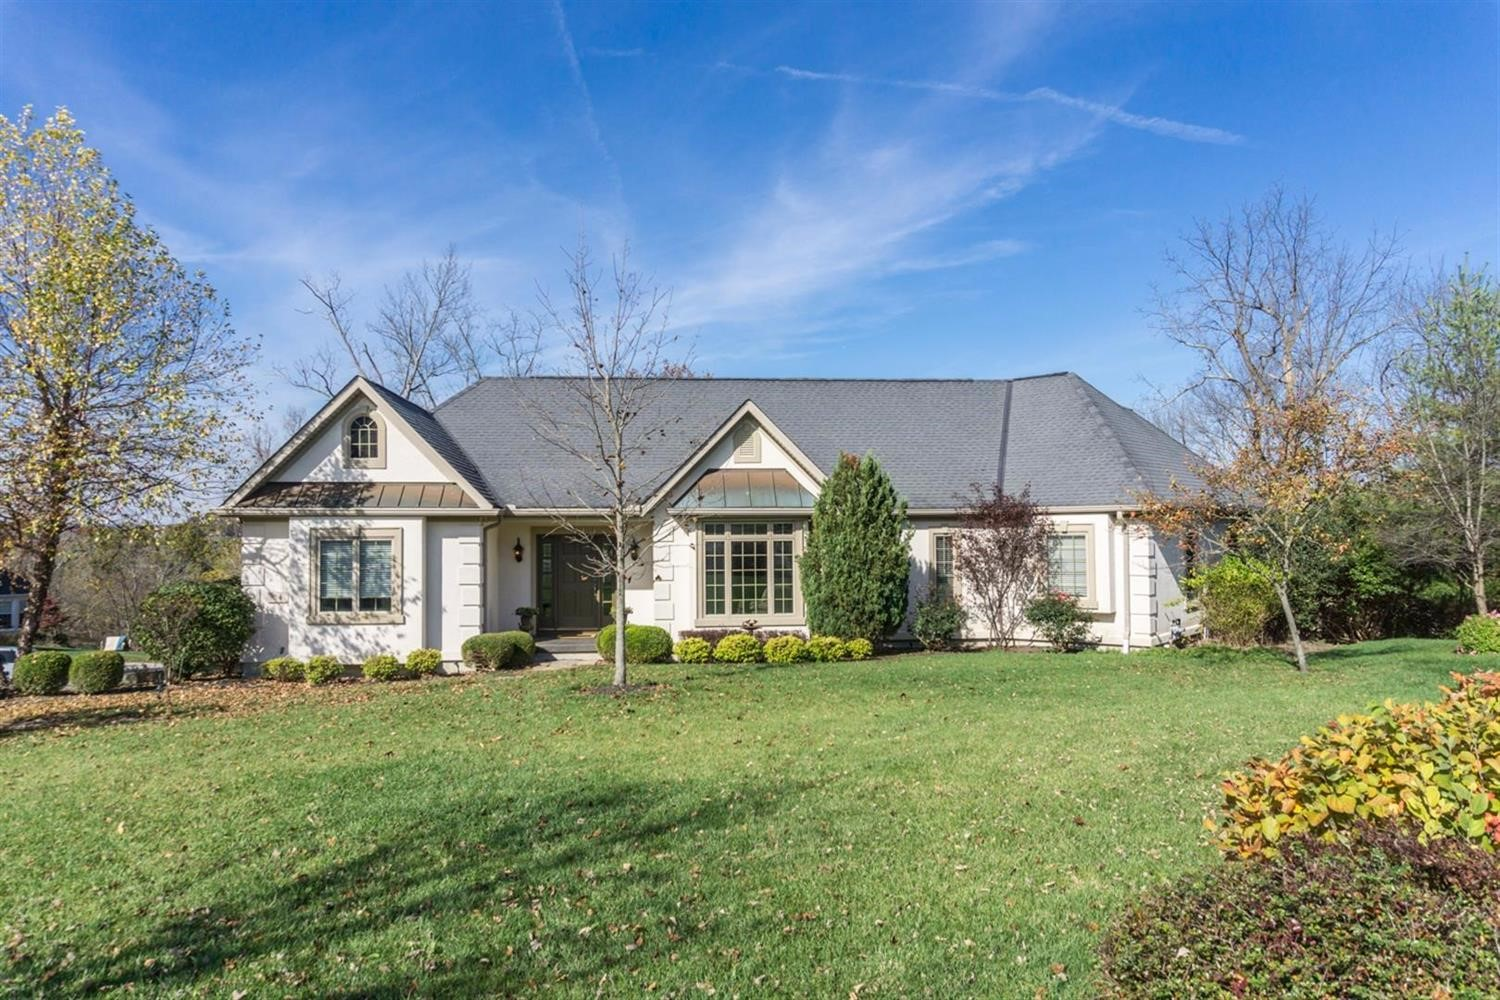 54 Muirfield Dr, North Bend, OH 45052